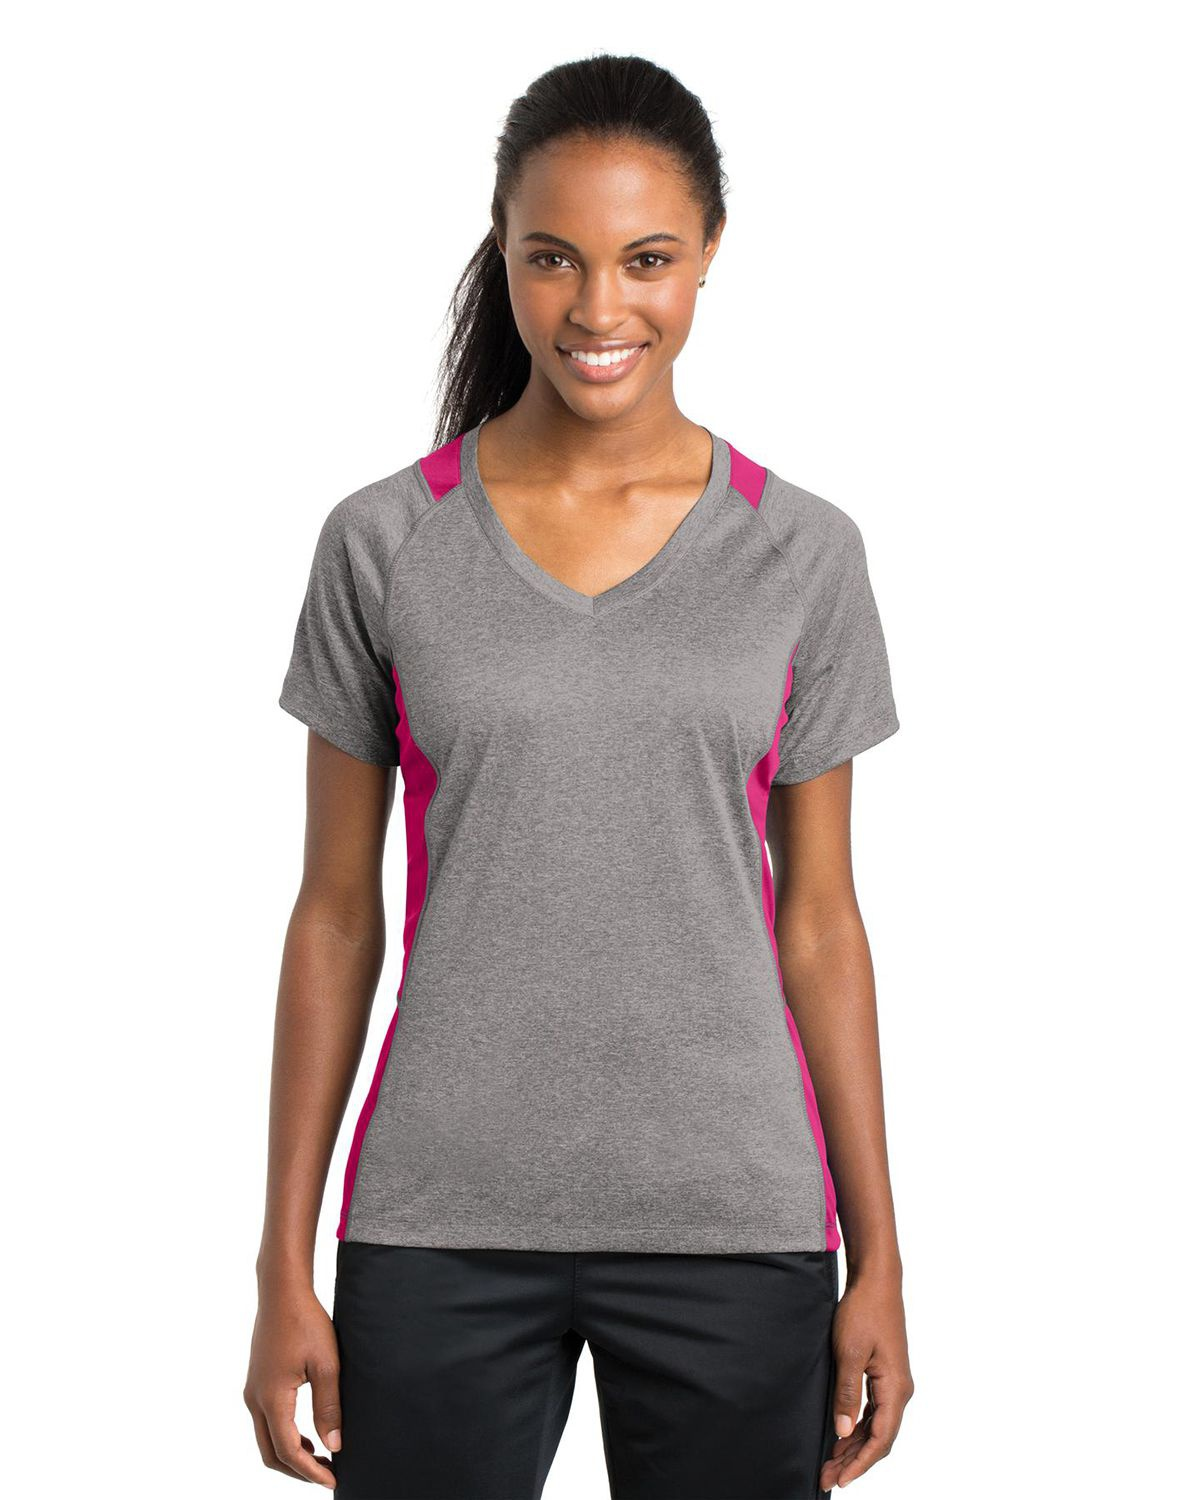 'Sport Tek LST361 Ladies Heather Colorblock Contender V-Neck Tee'